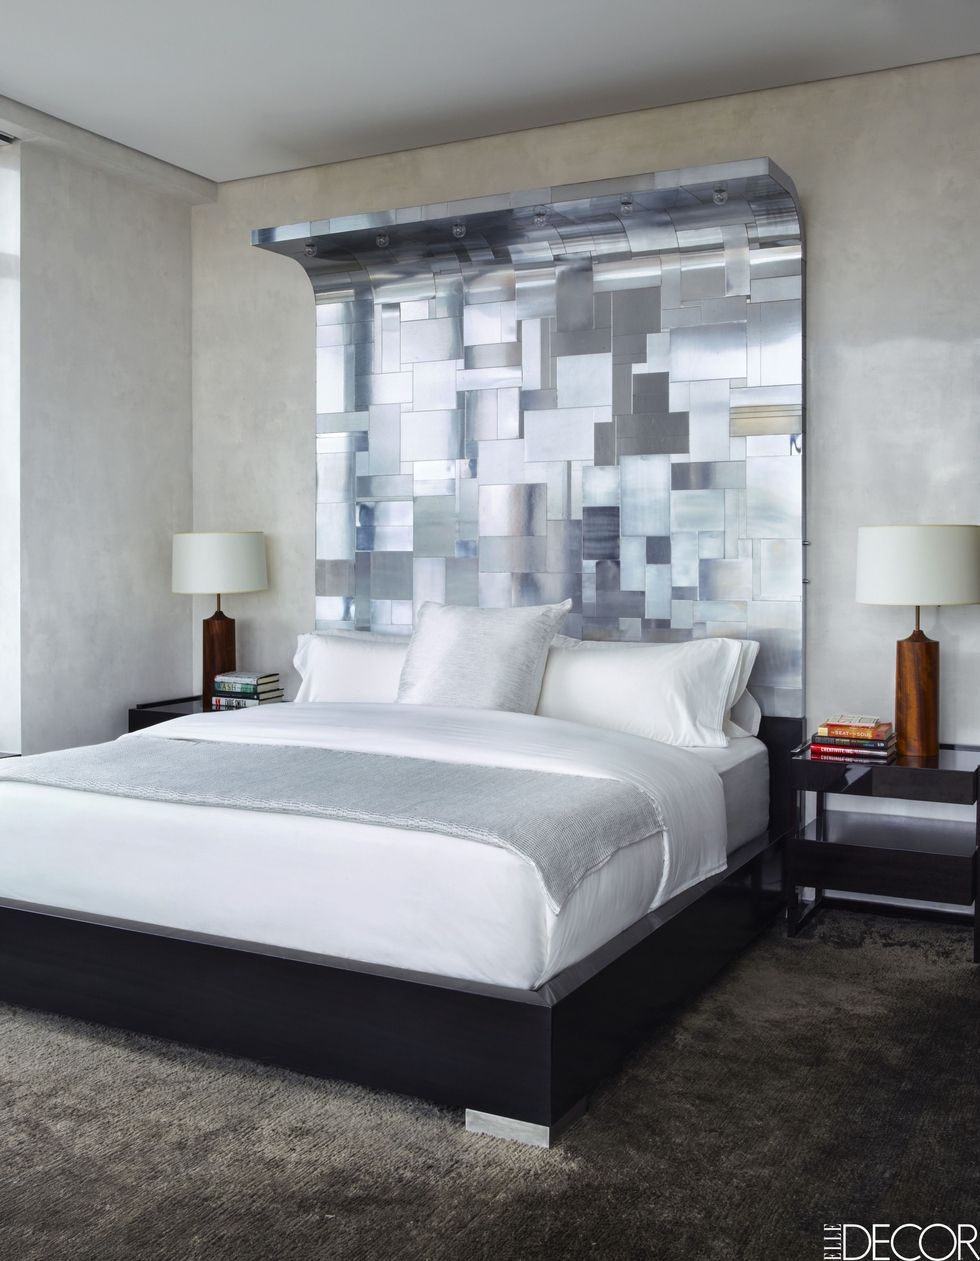 25 Inspiring Modern Bedroom Design Ideas with regard to 12 Some of the Coolest Tricks of How to Build Modern Bedroom Designs